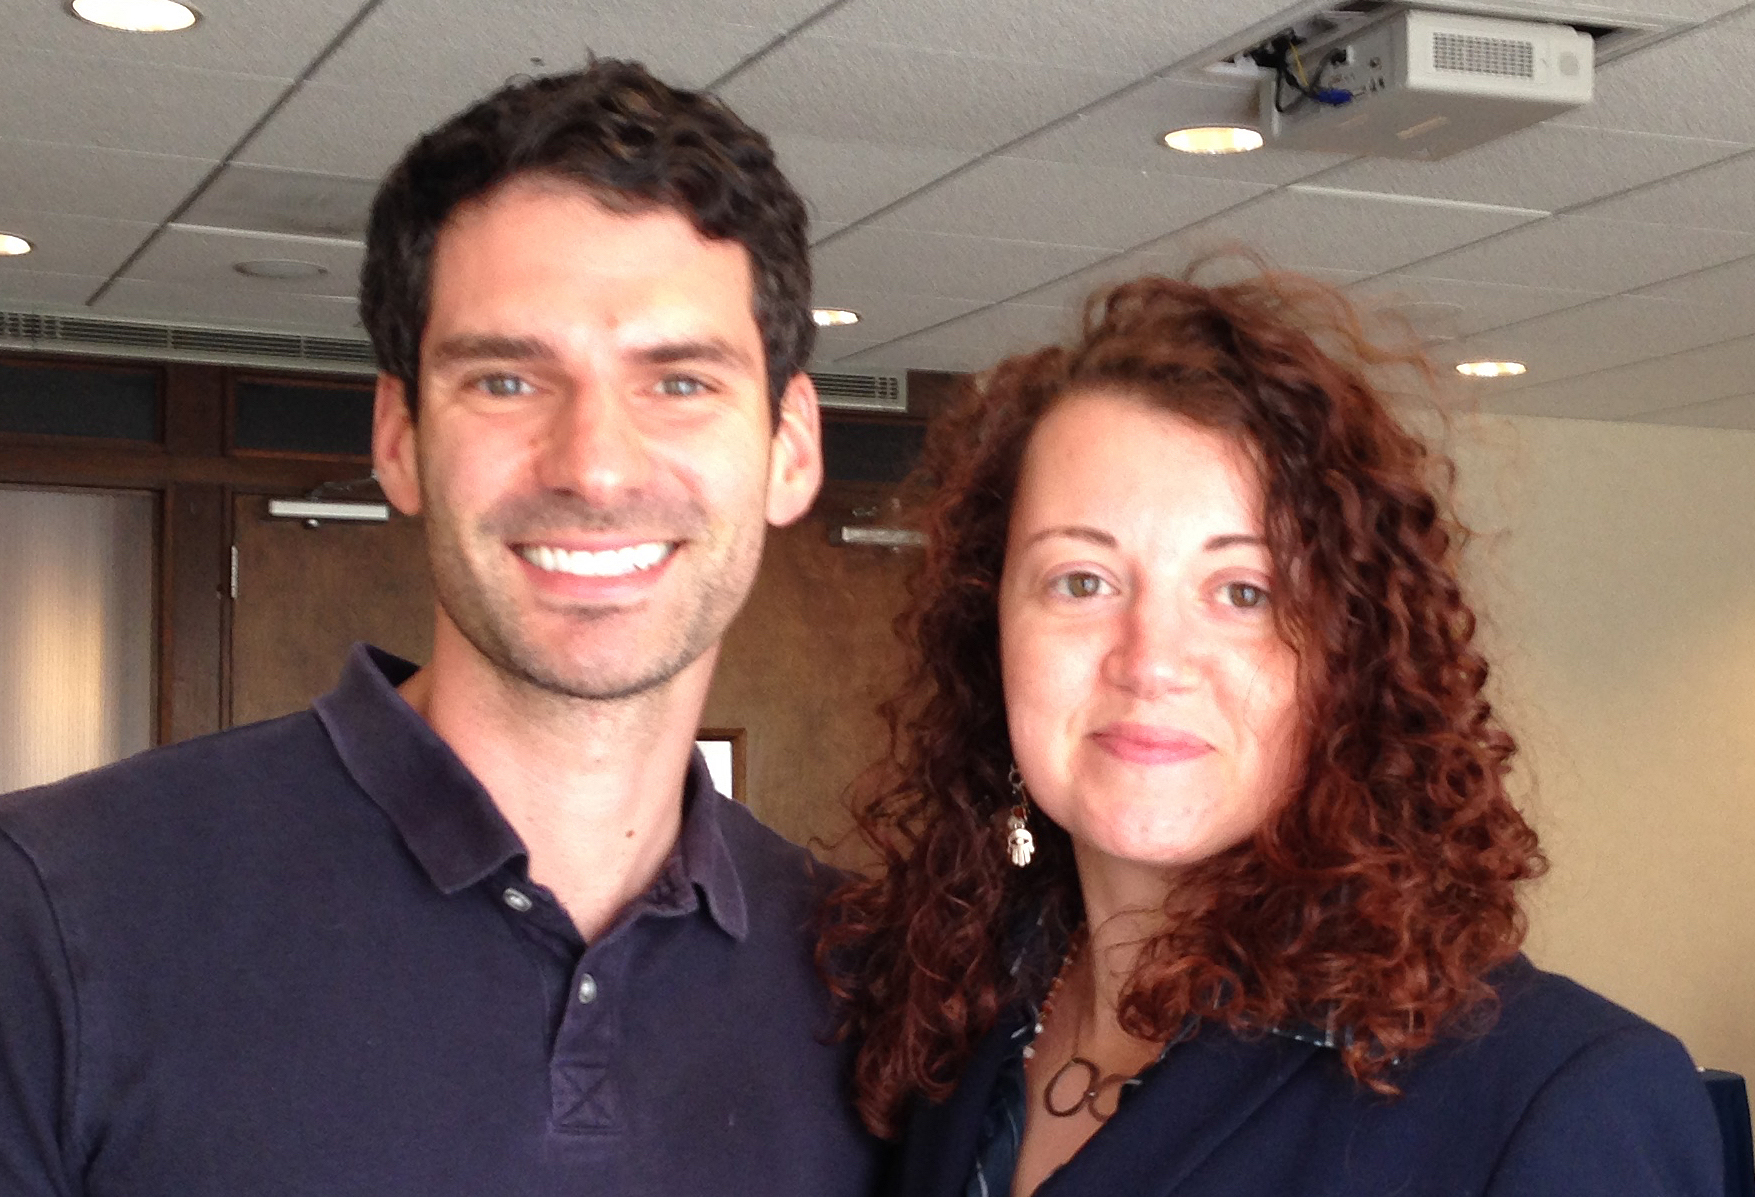 Drexel Professors Phillip Ayoub and Alison Kenner